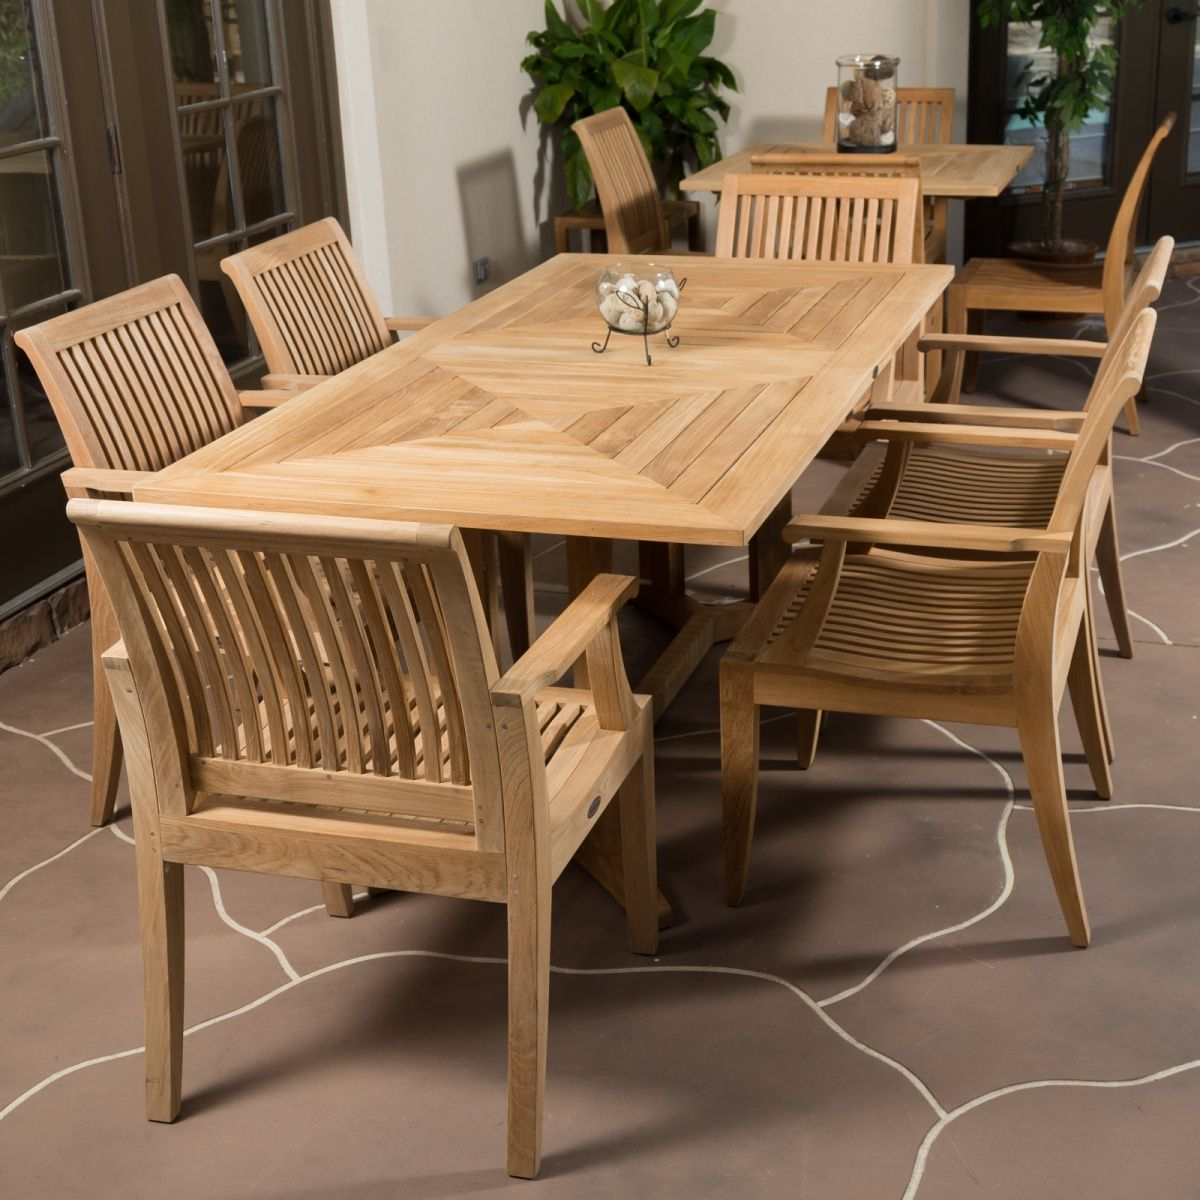 7 Pc Pyramid Teak Patio Set In 2019 Modern Patio Furniture in dimensions 1200 X 1200